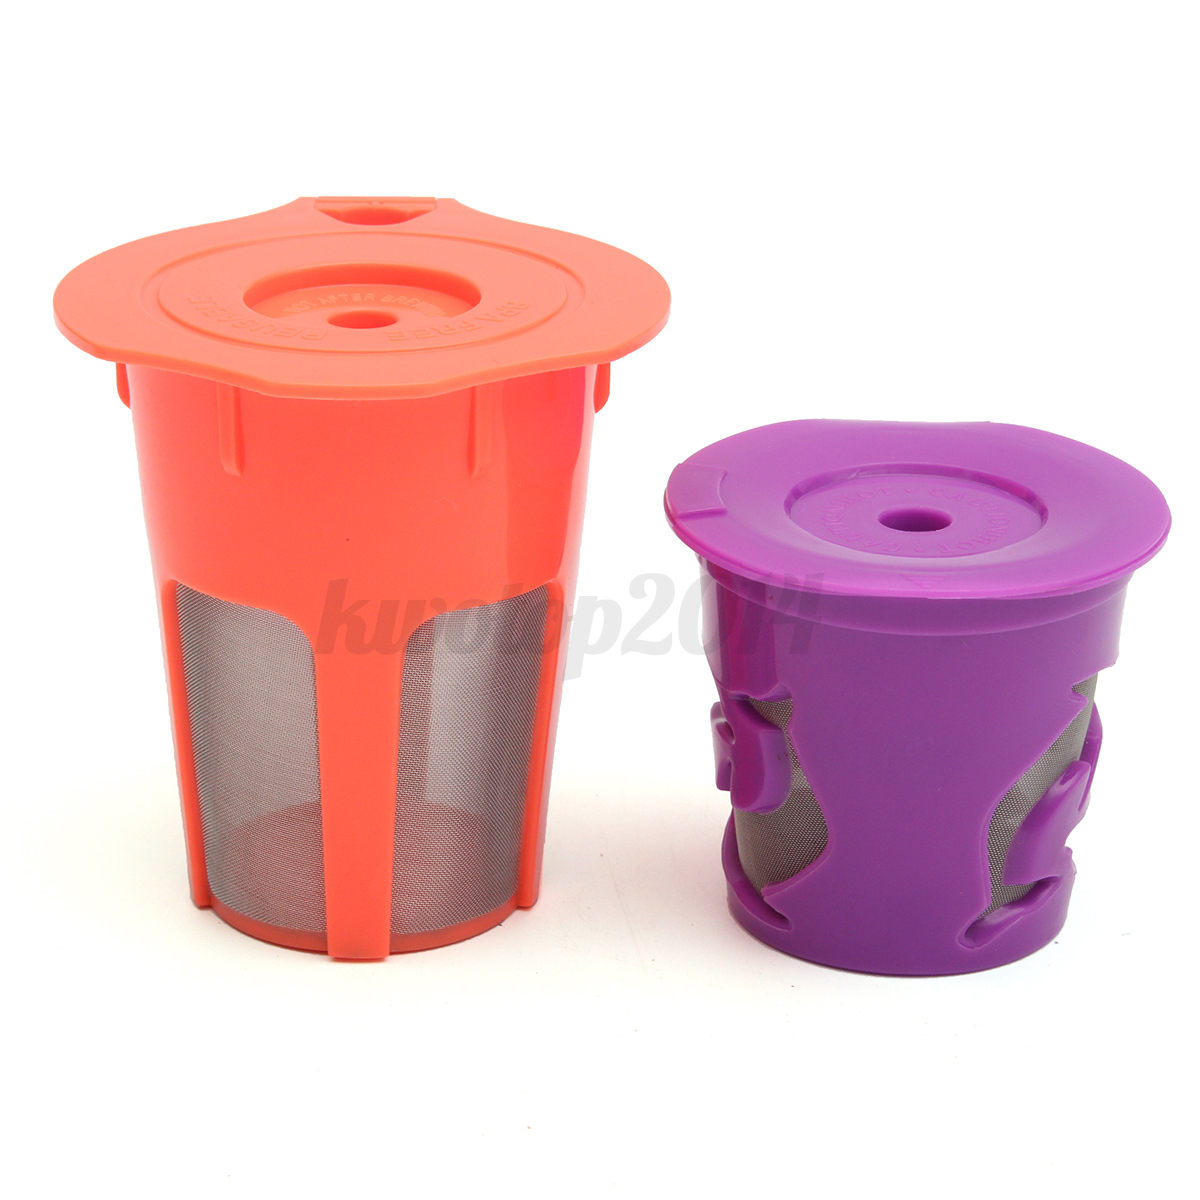 One Cup Coffee Maker With Reusable Filter : Refillable Reusable Coffee Capsule Pod Filter Refilling Cup Set For Coffee Maker eBay